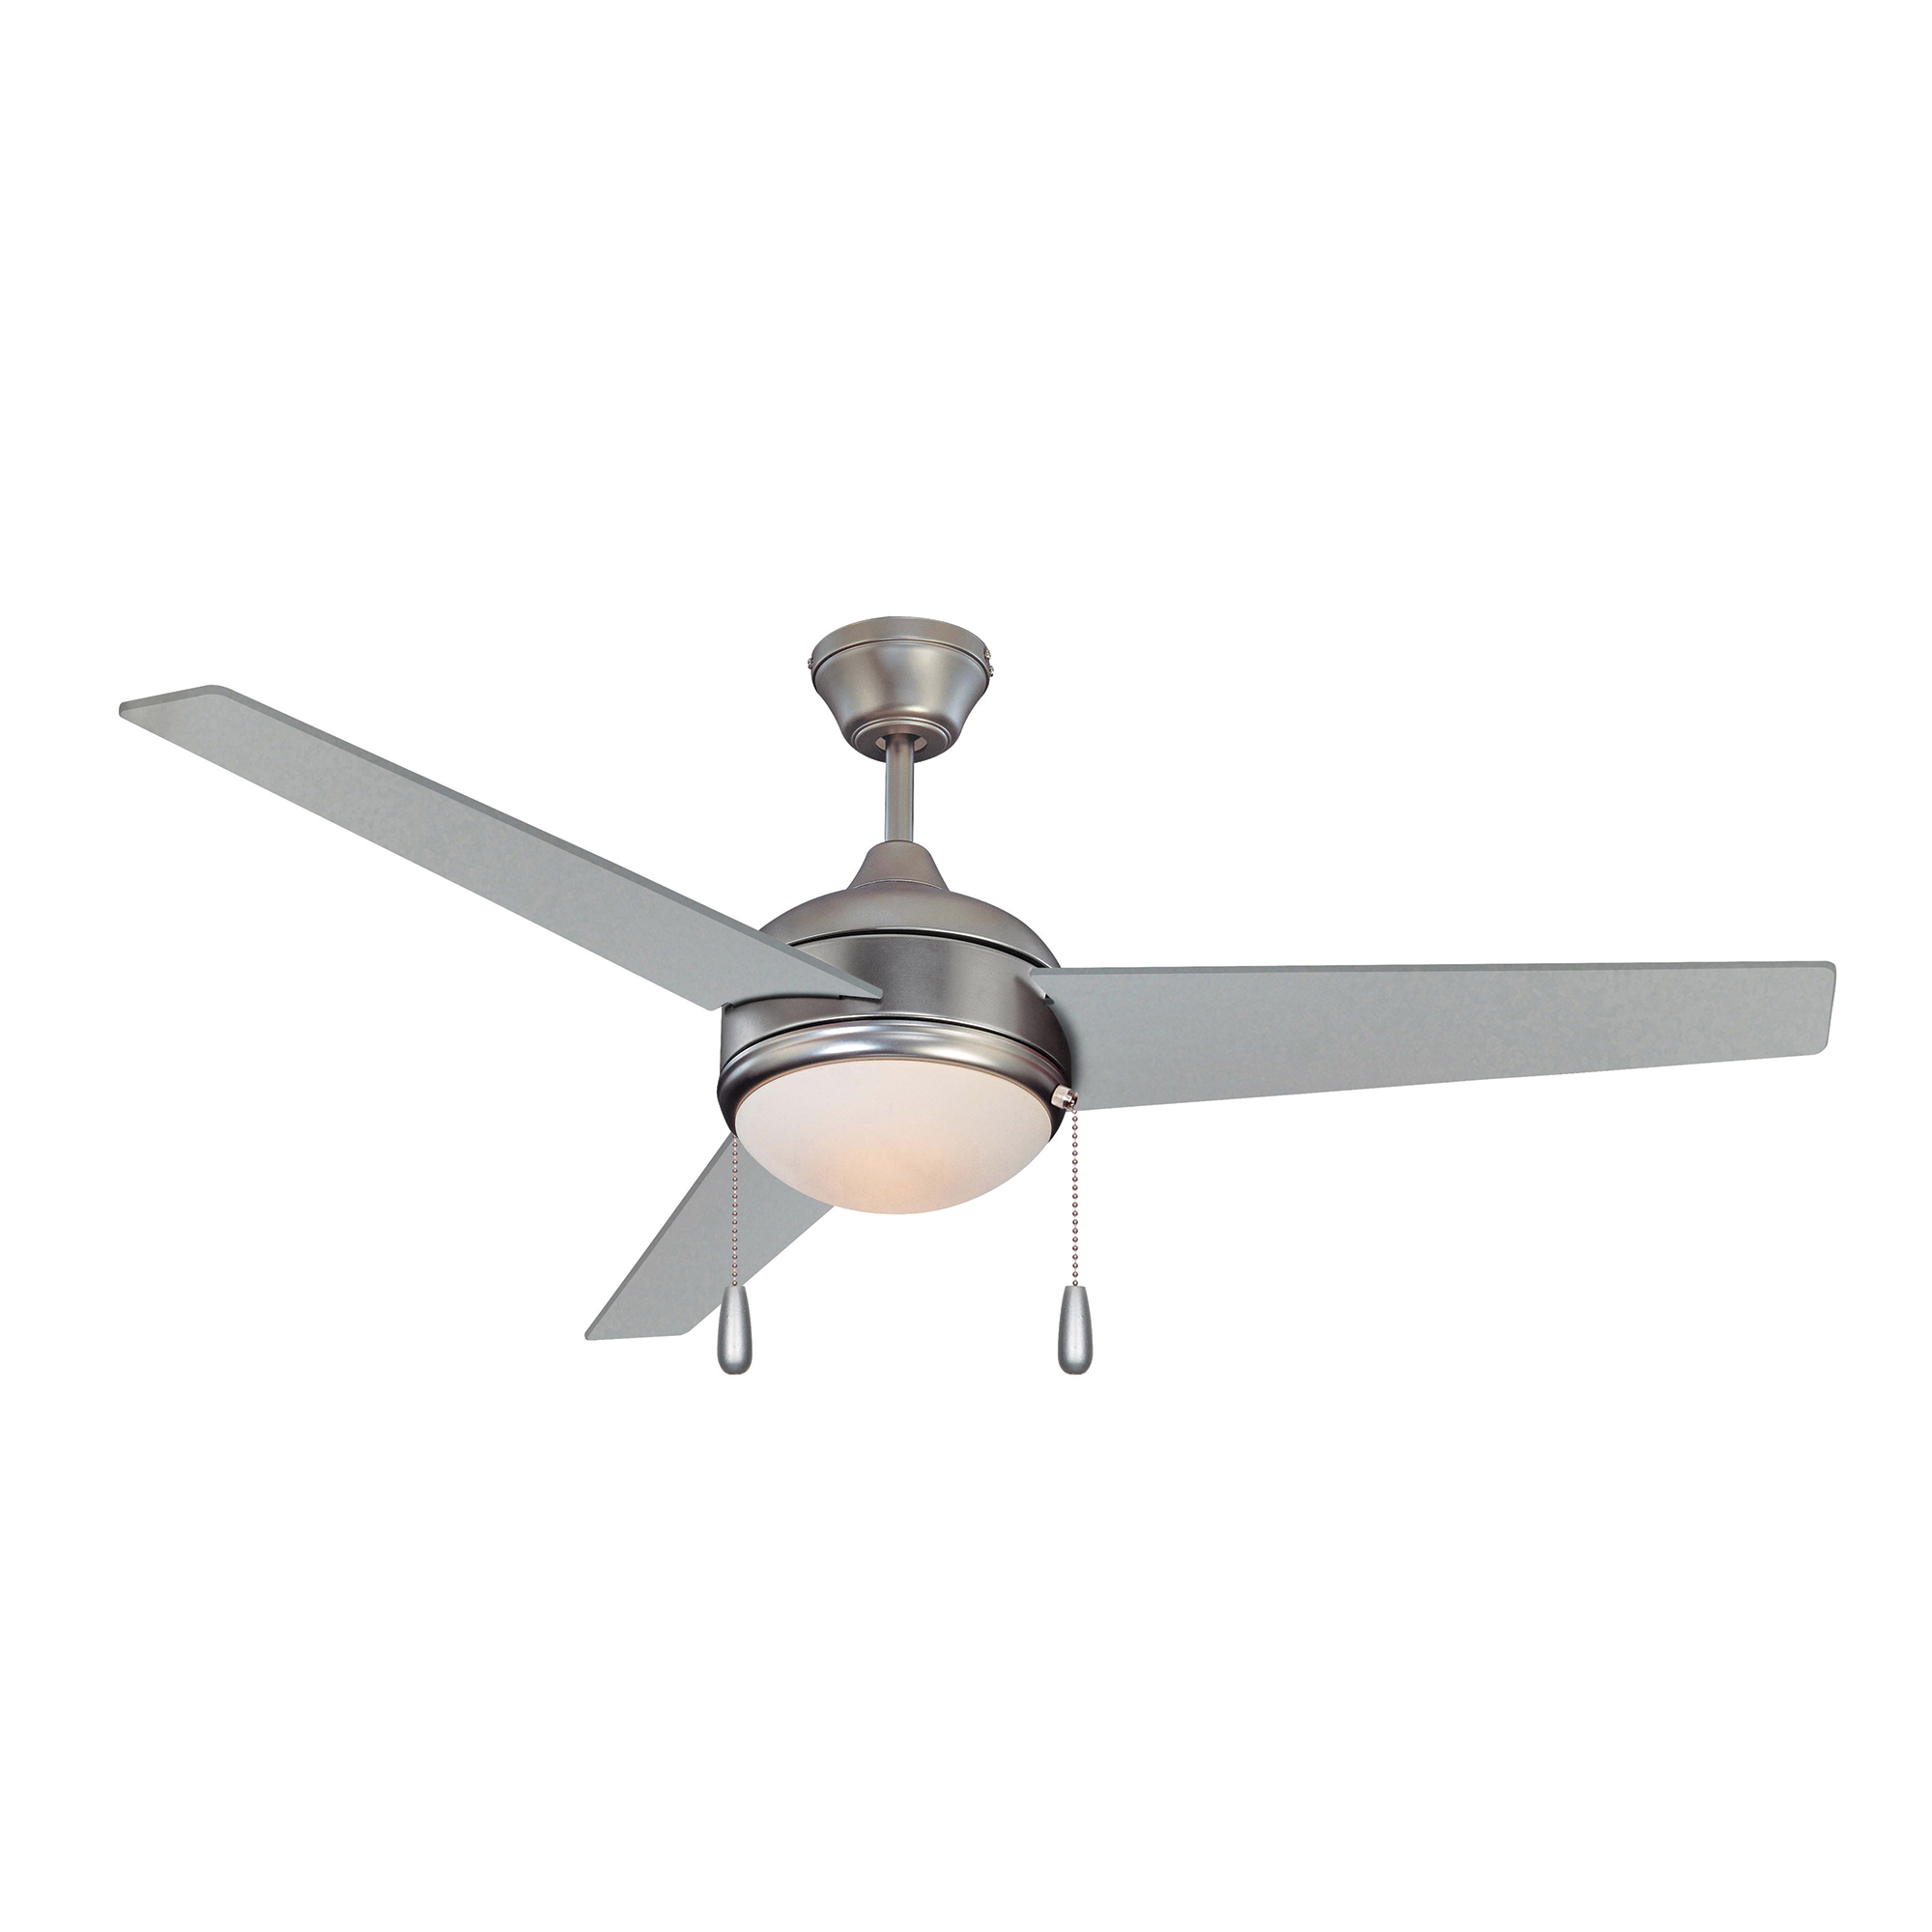 Concord 52SKY3SN-PCHN-ES-LED Skylark 52 inch Satin Nickel with Chrome Blades Indoor Ceiling Fan